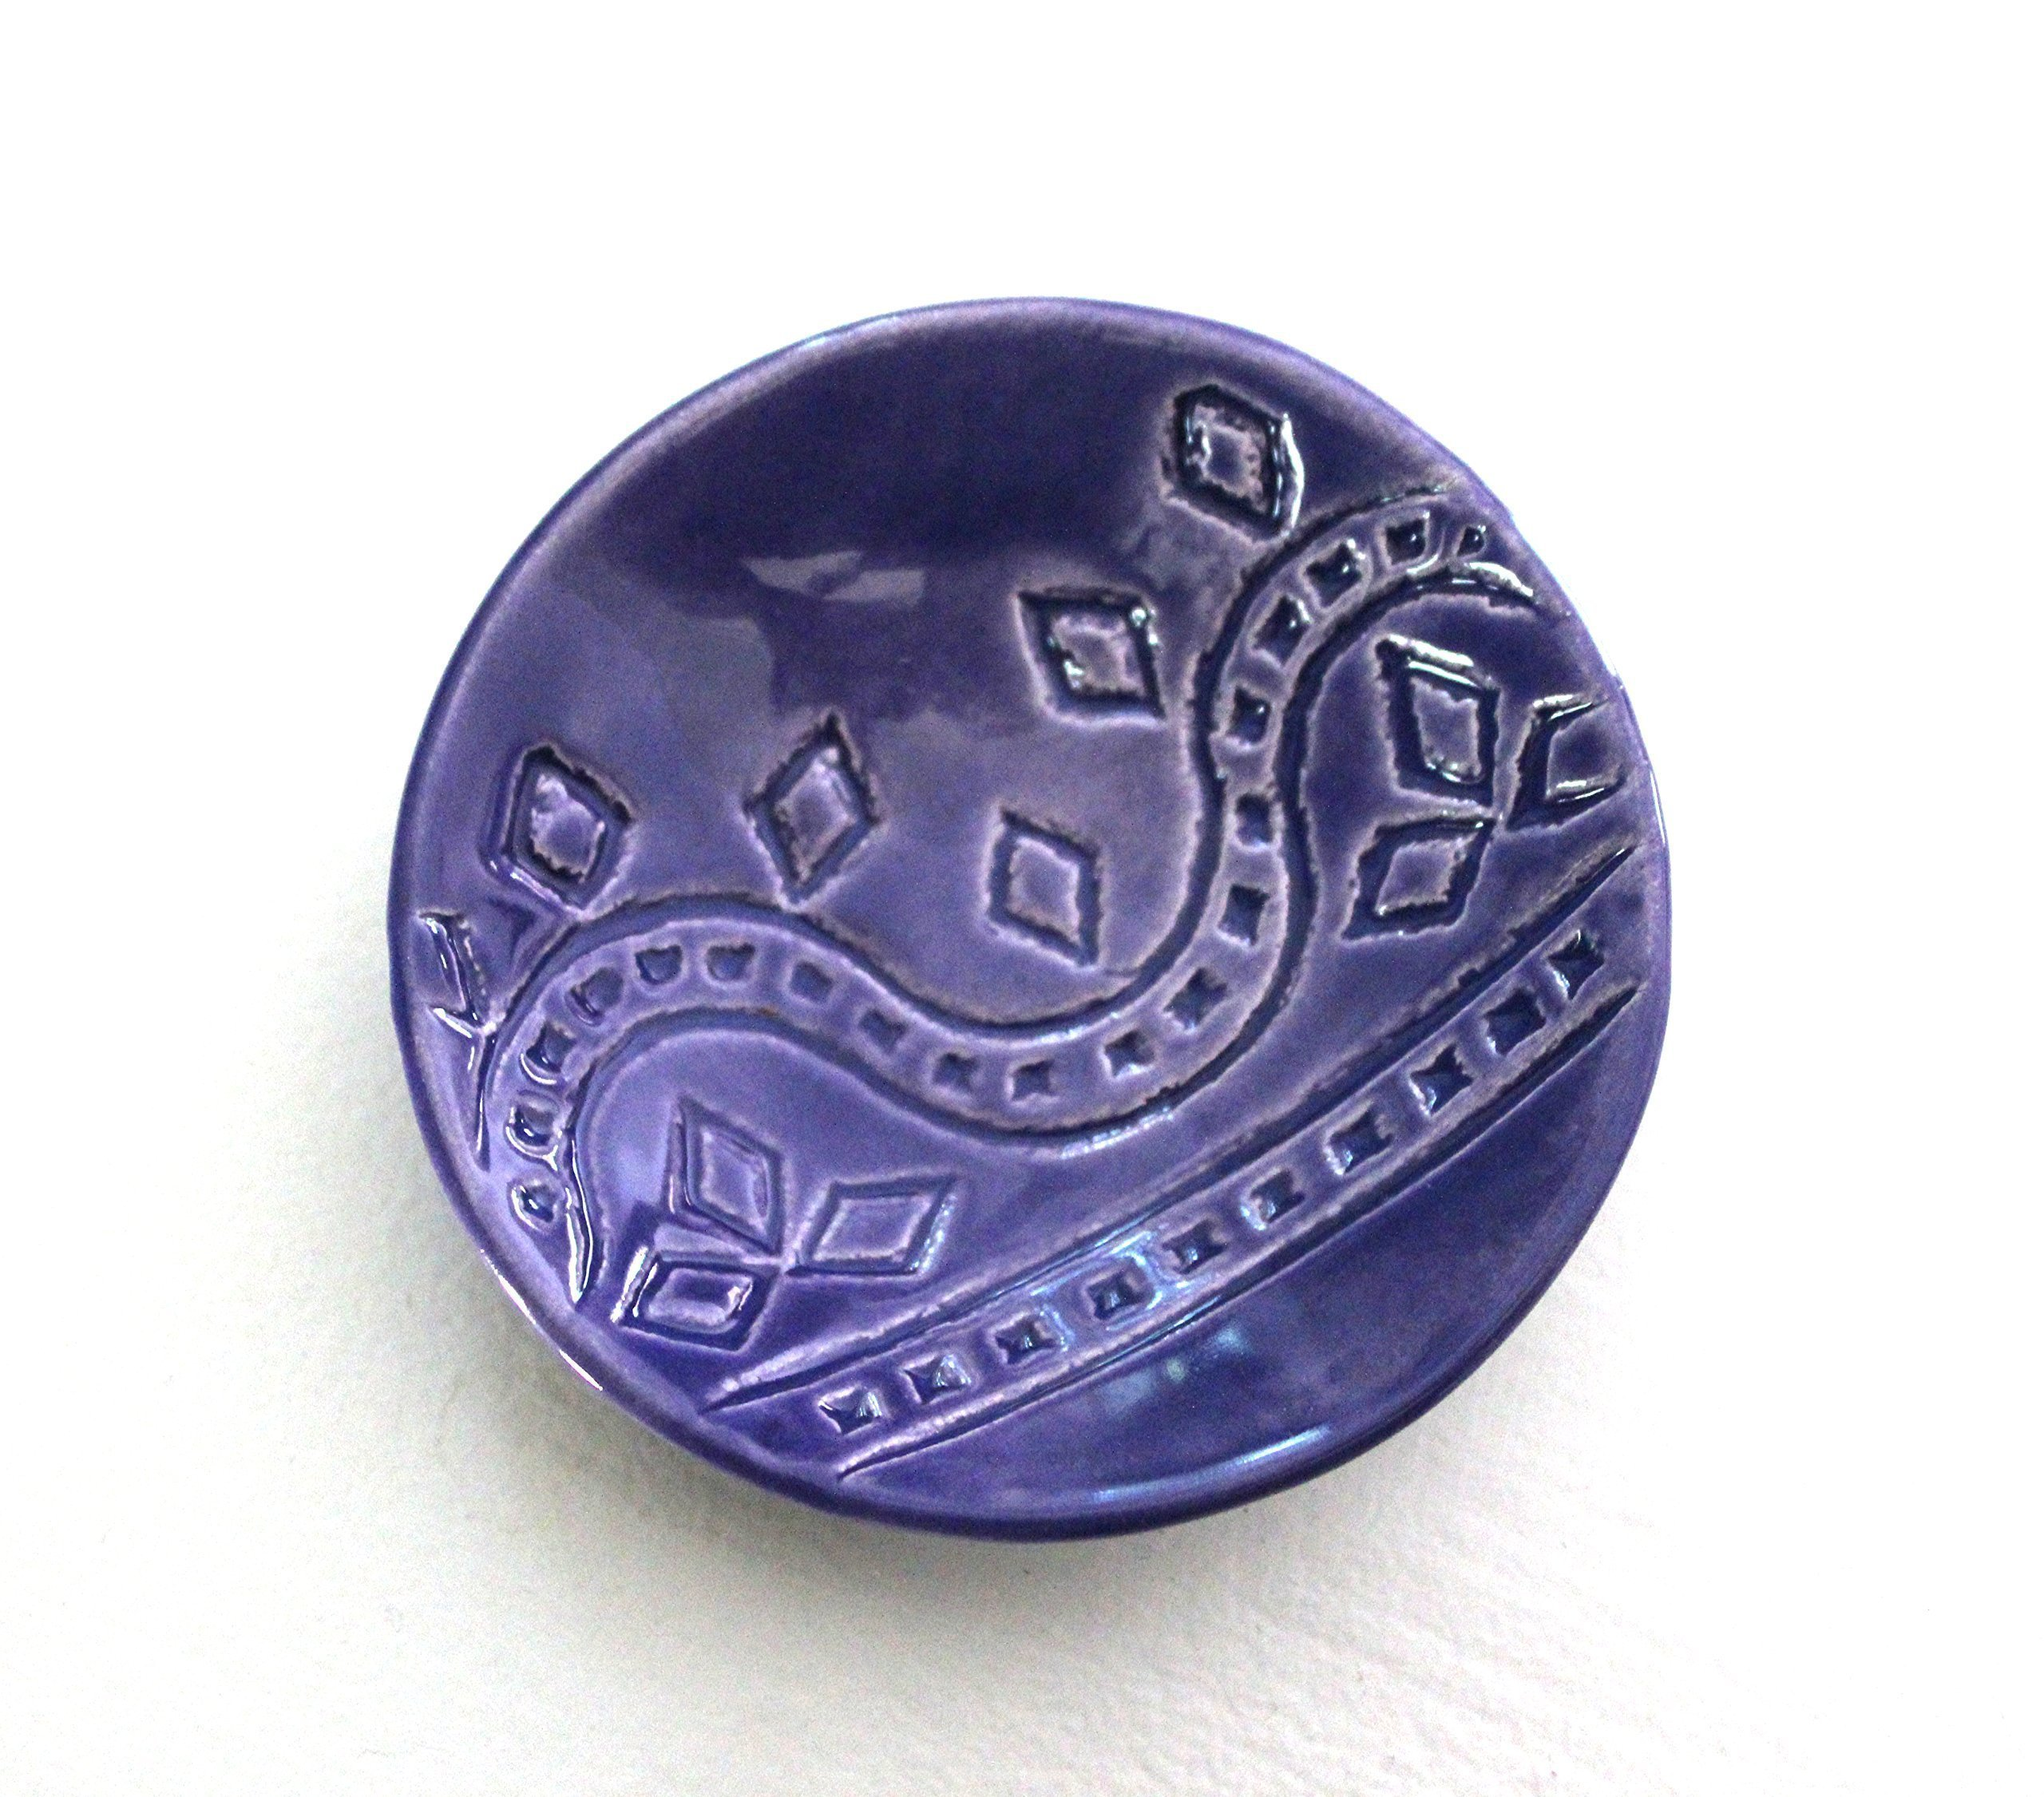 Indigo Ring Dish - Handmade Jewelry Bowl - Bohemian / Boho dish with geometric pattern and bright blue glaze